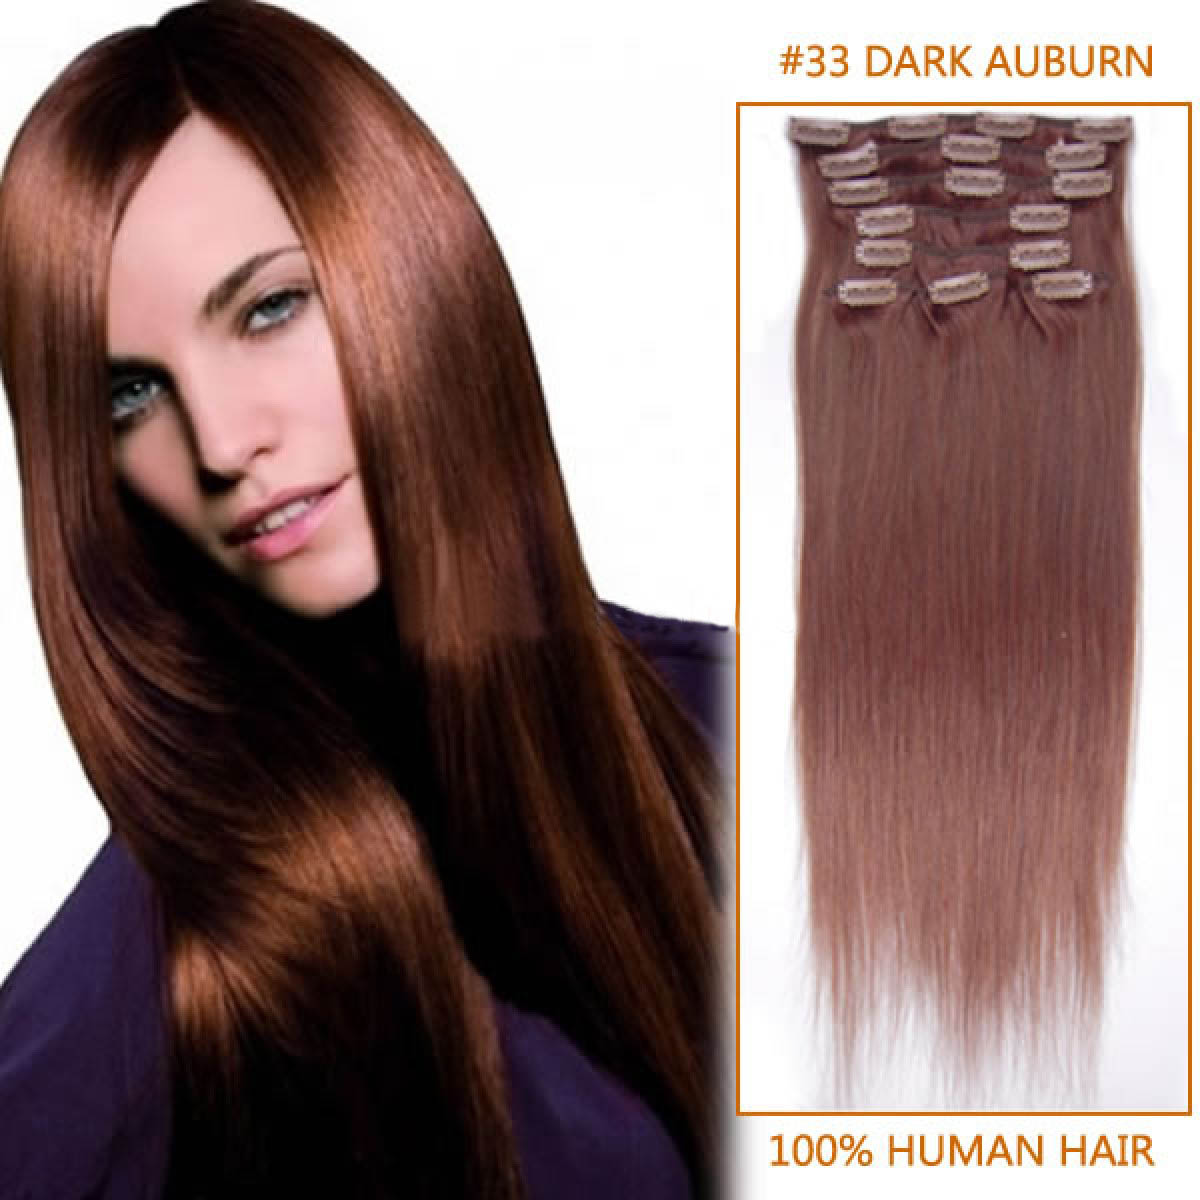 Inch 33 dark auburn clip in remy human hair extensions 12pcs 20 inch 33 dark auburn clip in remy human hair extensions 12pcs pmusecretfo Images